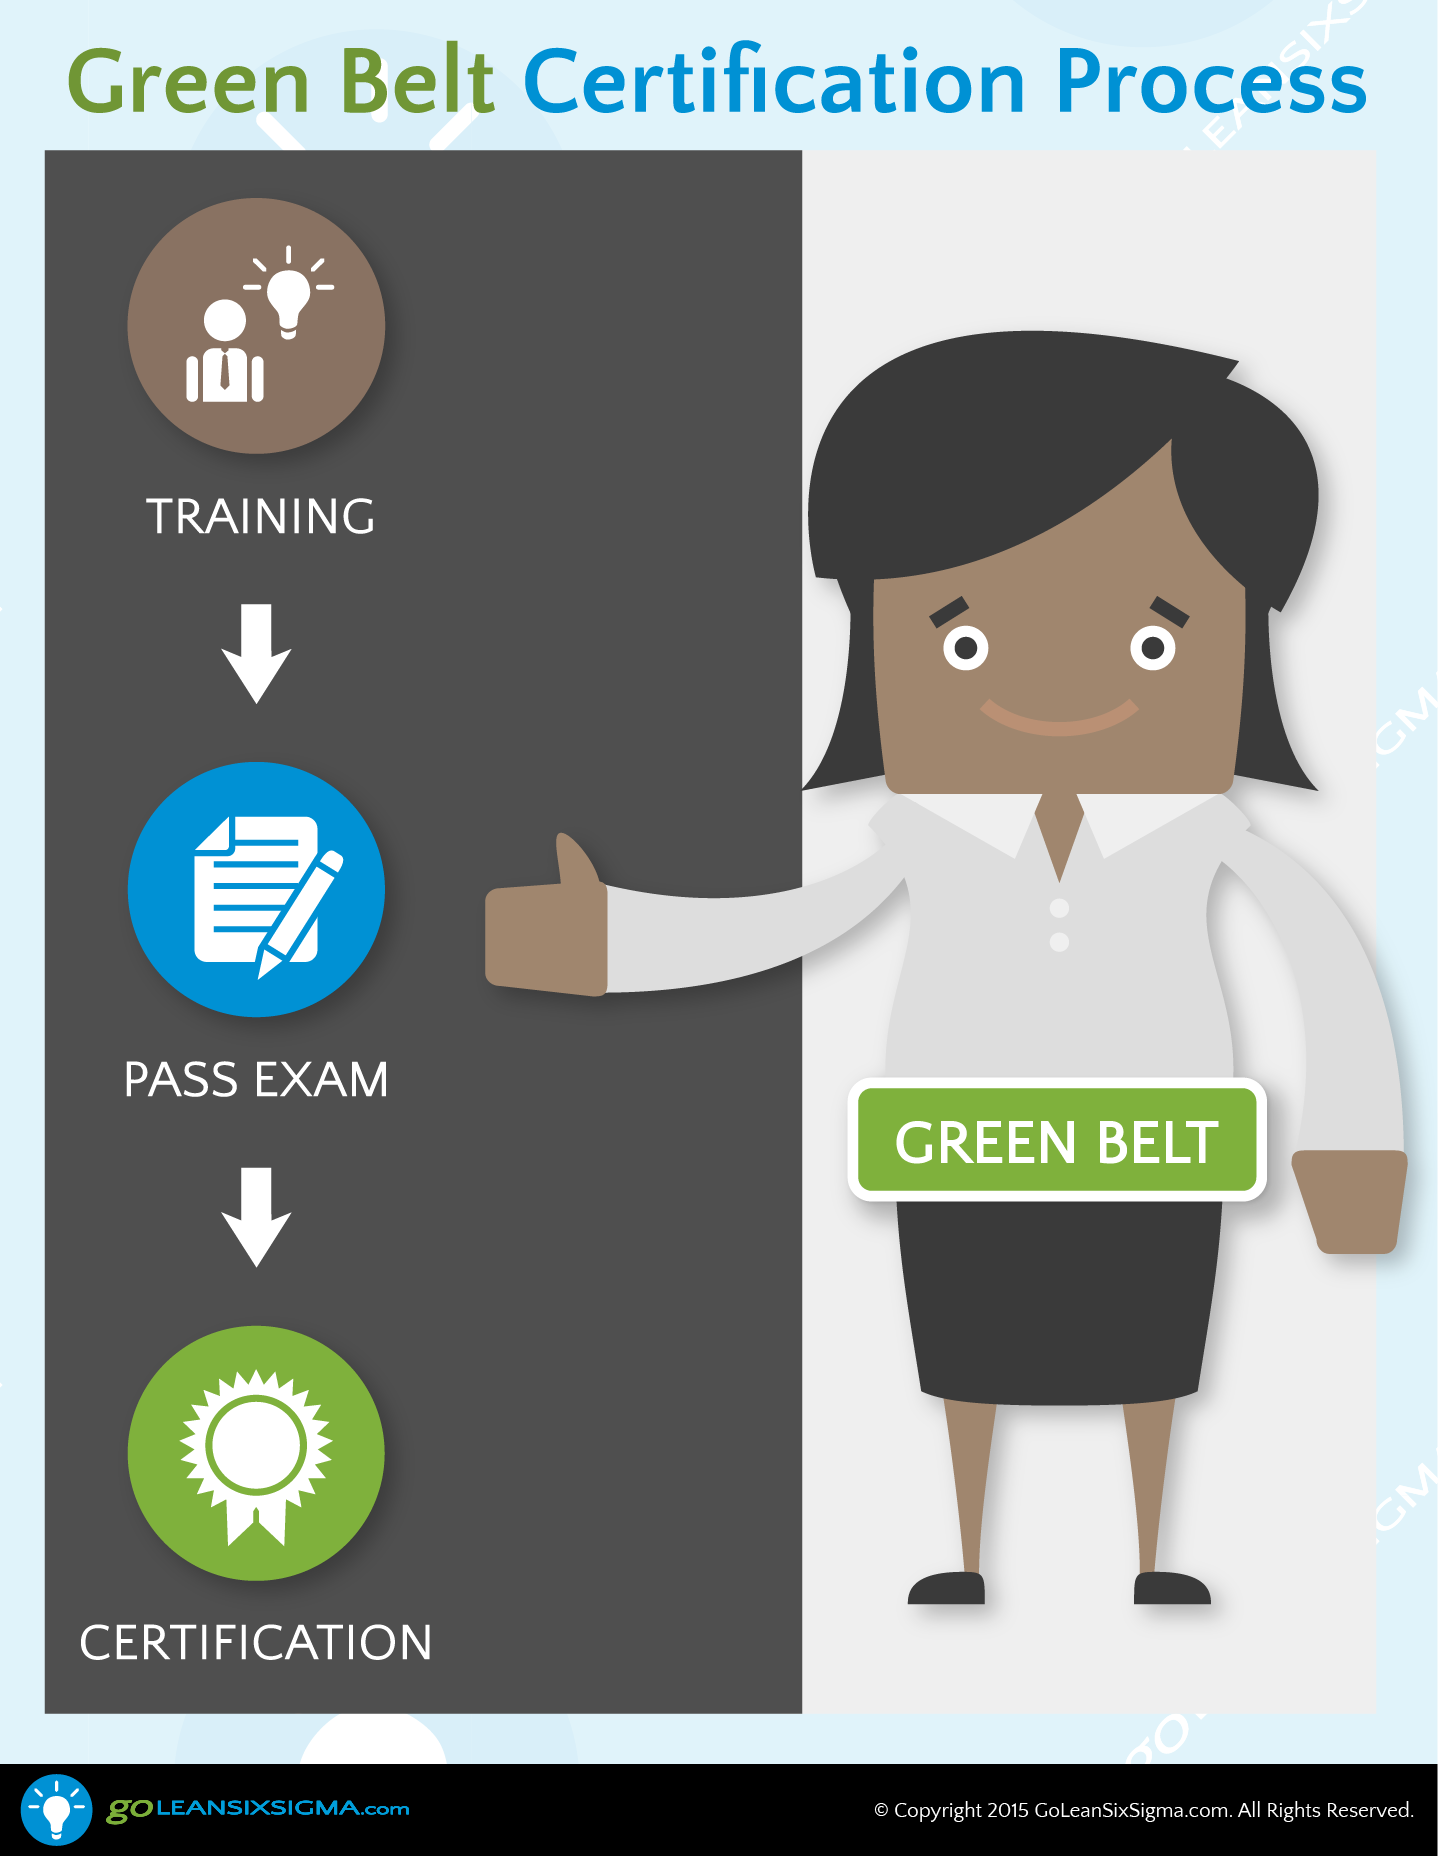 The Lean Six Sigma Green Belt Certification Process